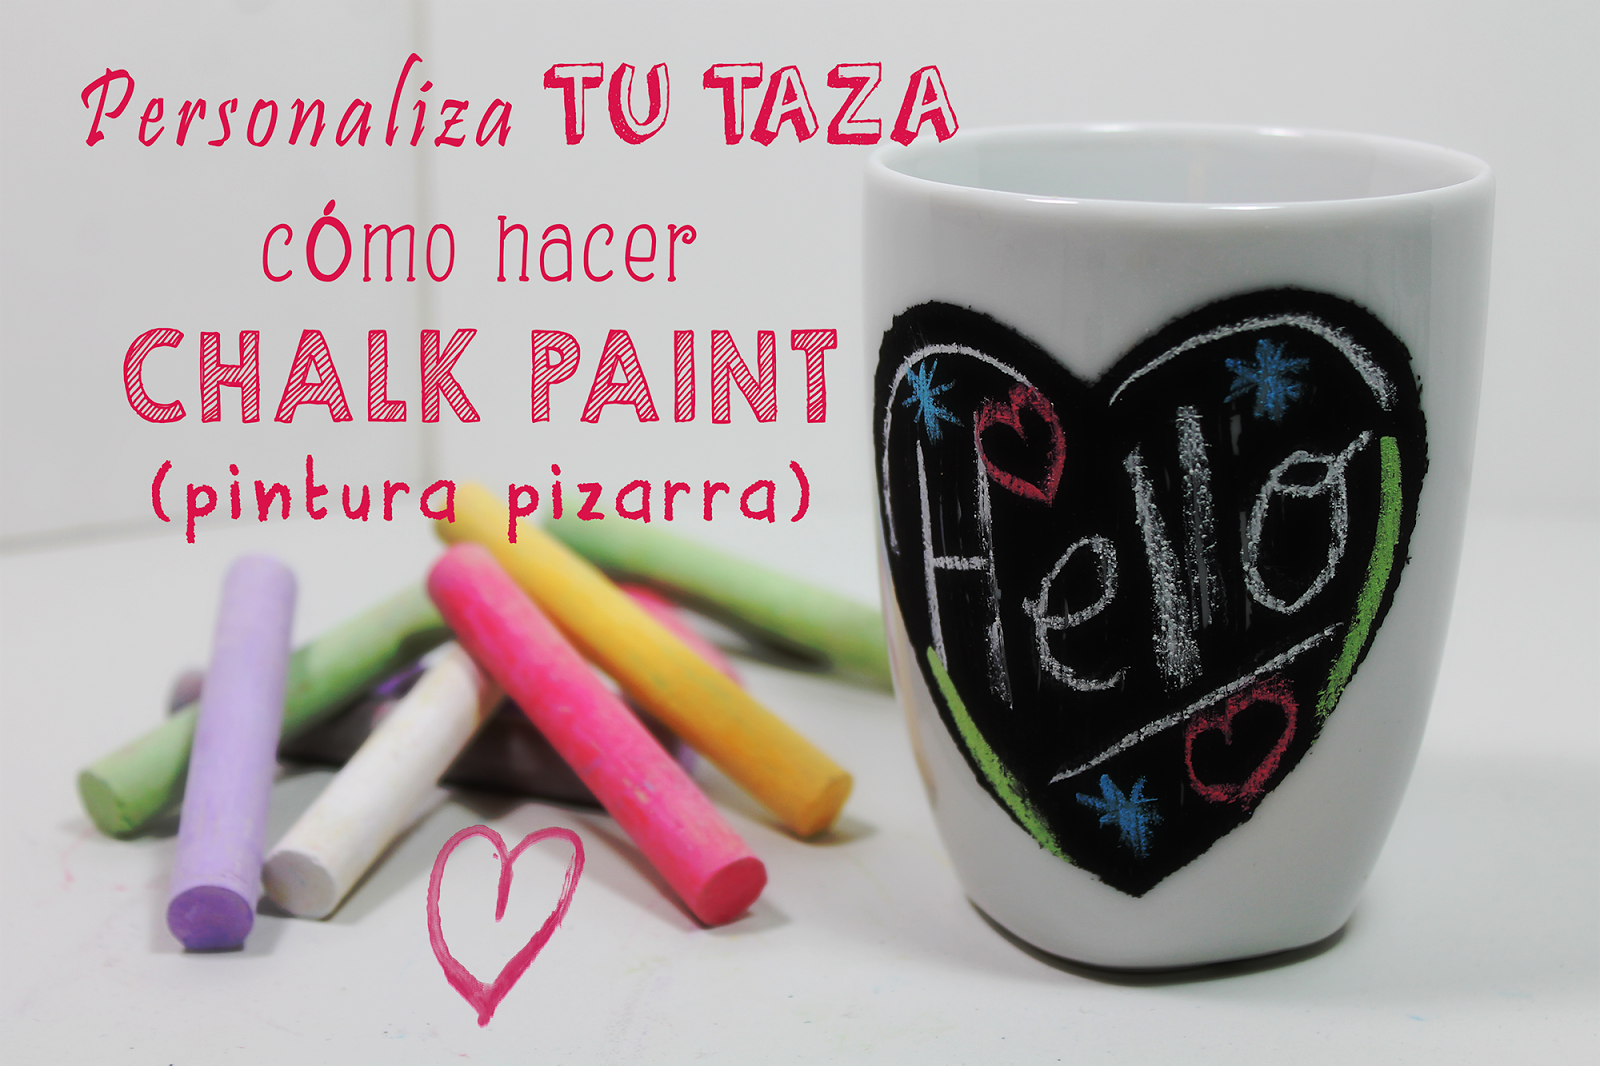 Hacer Pintura Chalk Paint Taza Decorada Con Chalk Paint Pintura Pizarra Tutorial